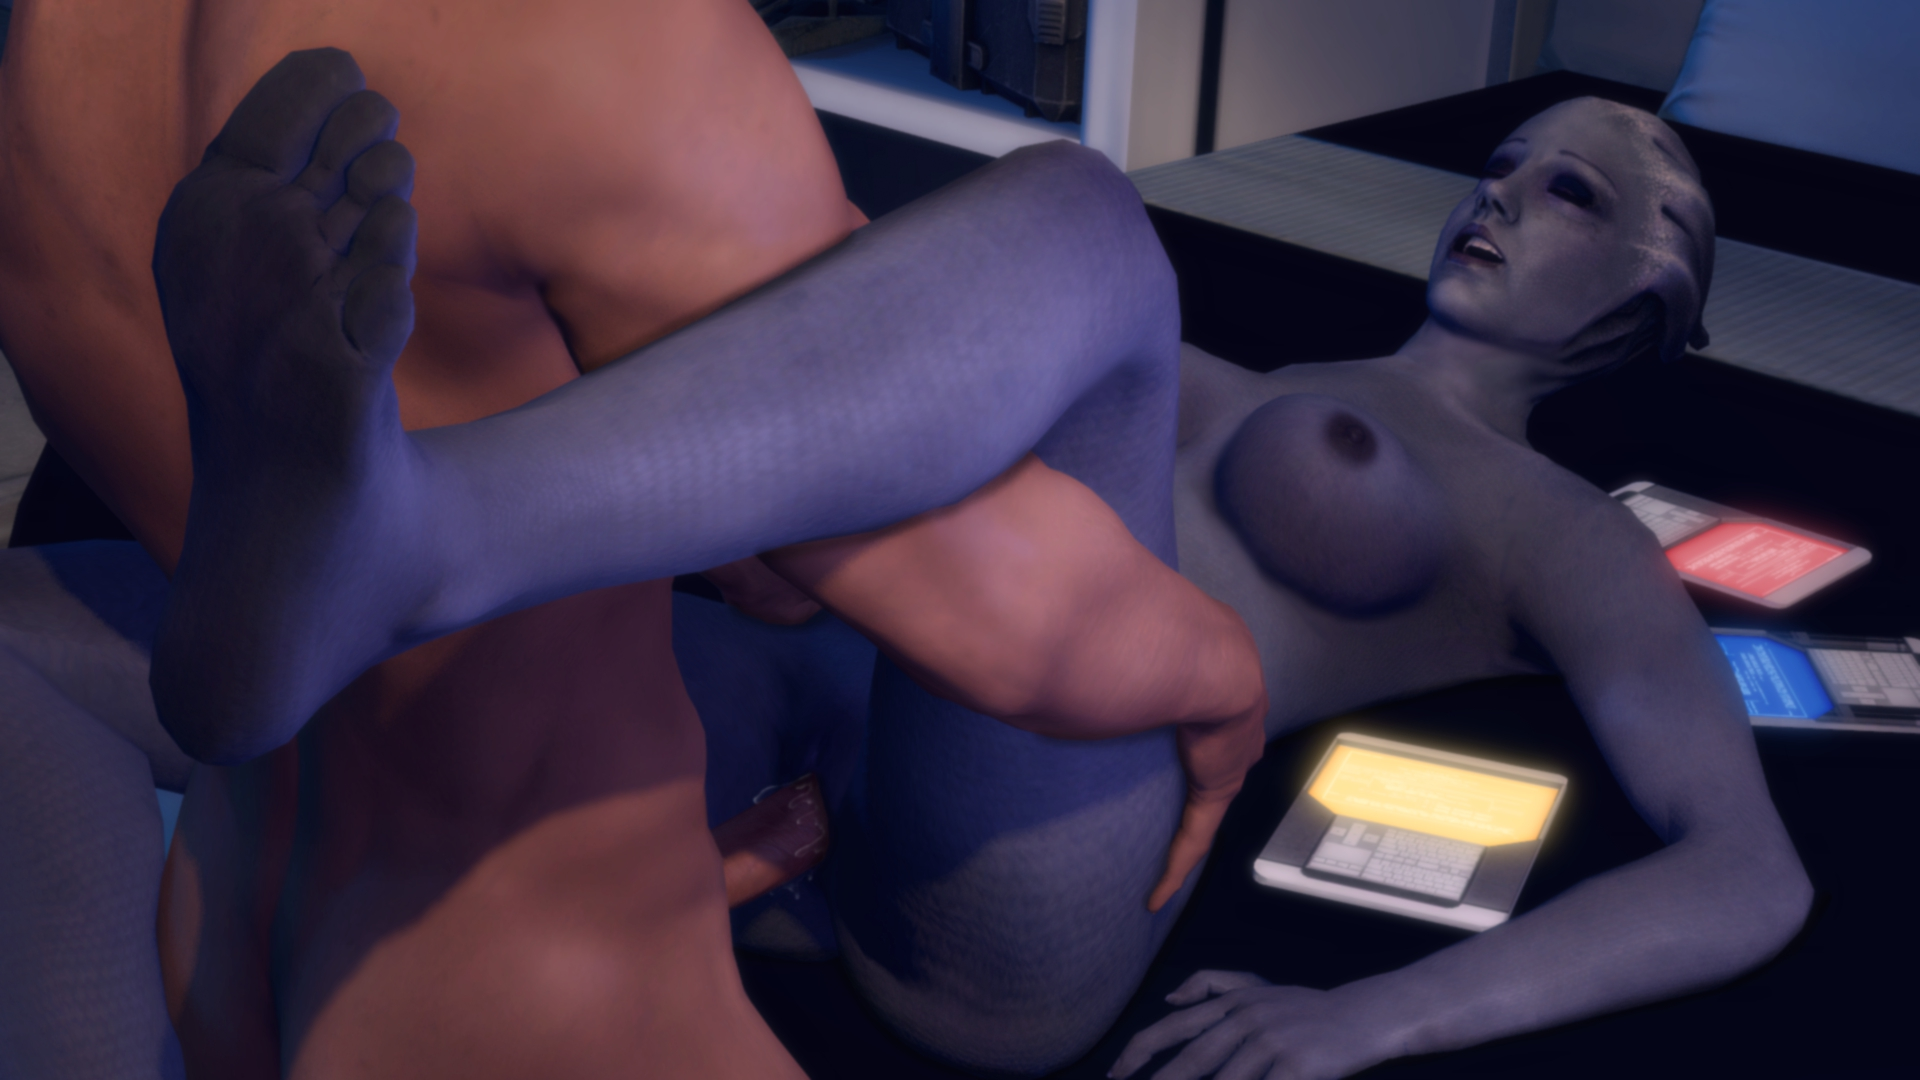 Liara mass effect nude animated sex scene nudes image